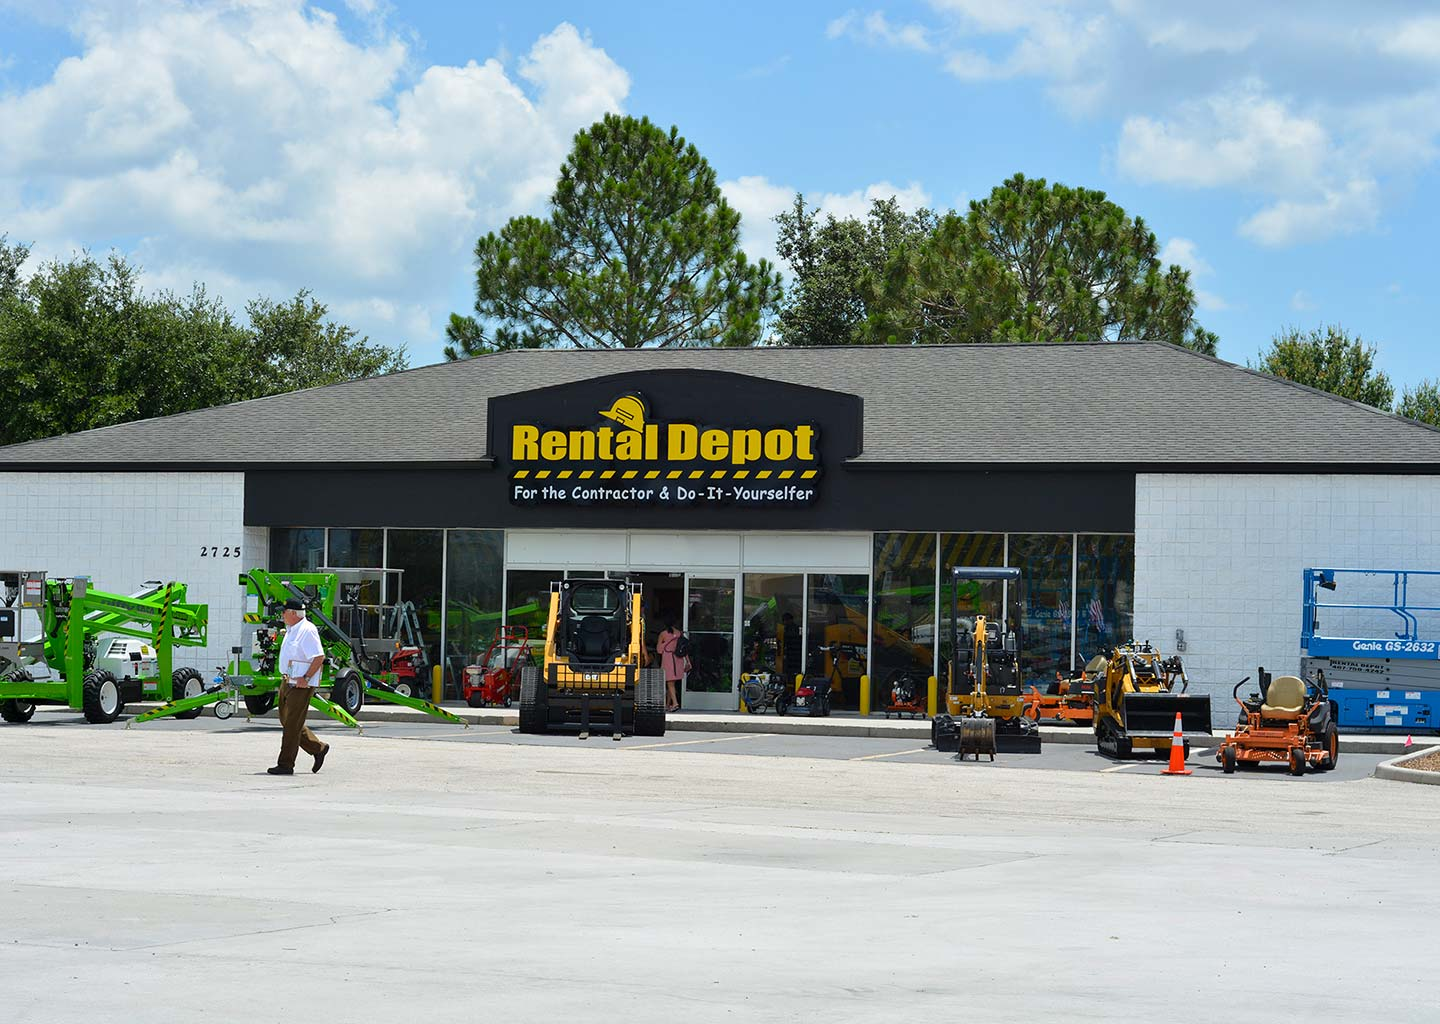 construction equipment rentals orlando fl home rental depot construction equipment rentals orlando